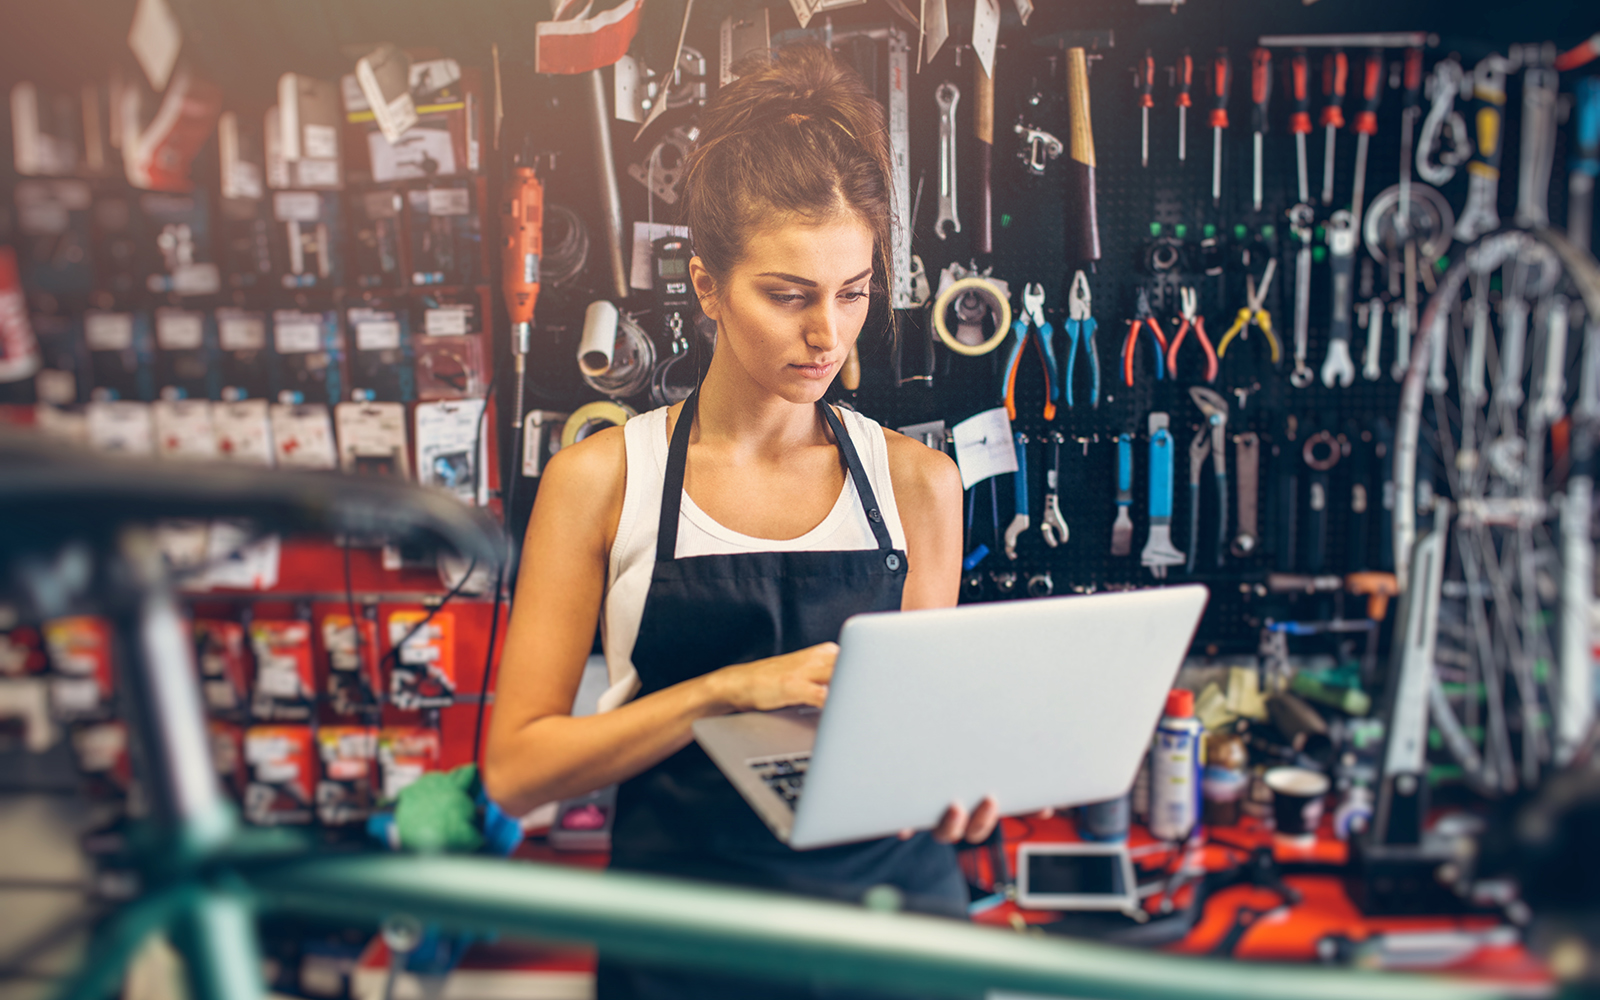 Portrait of a young female bicycle mechanic using a laptop.